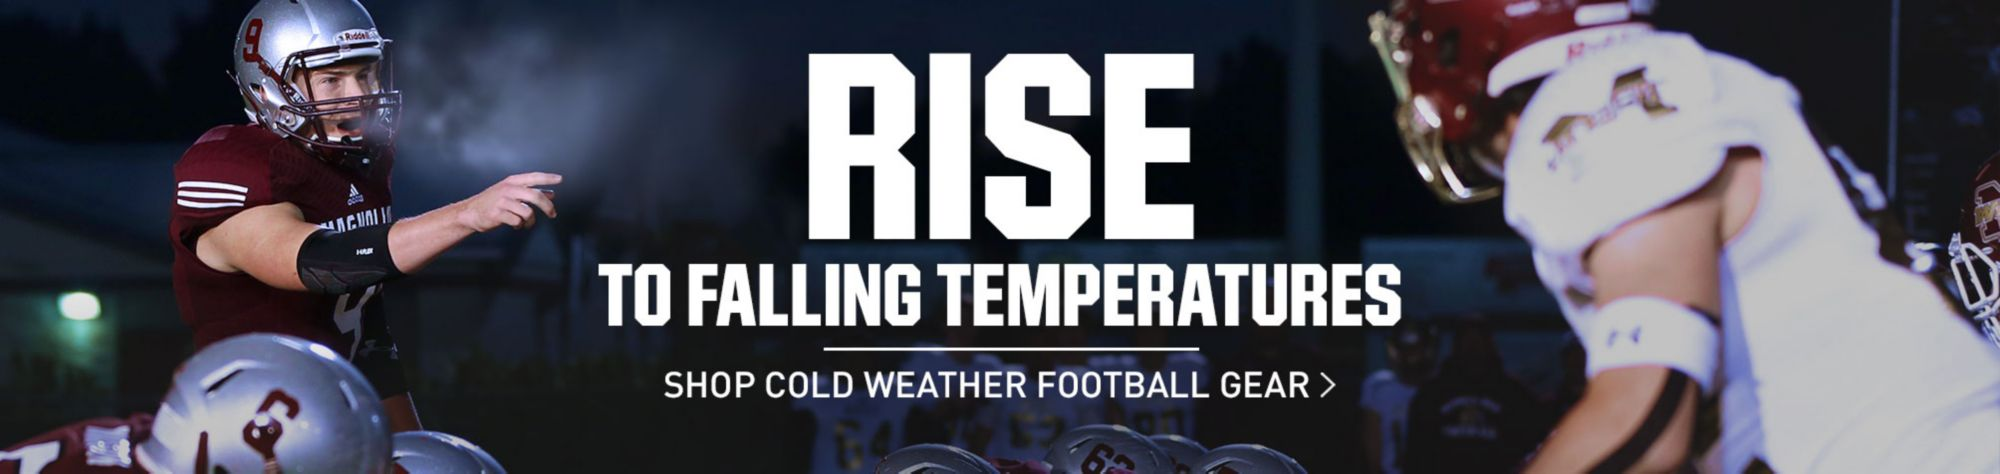 Football Cold Weather Gear